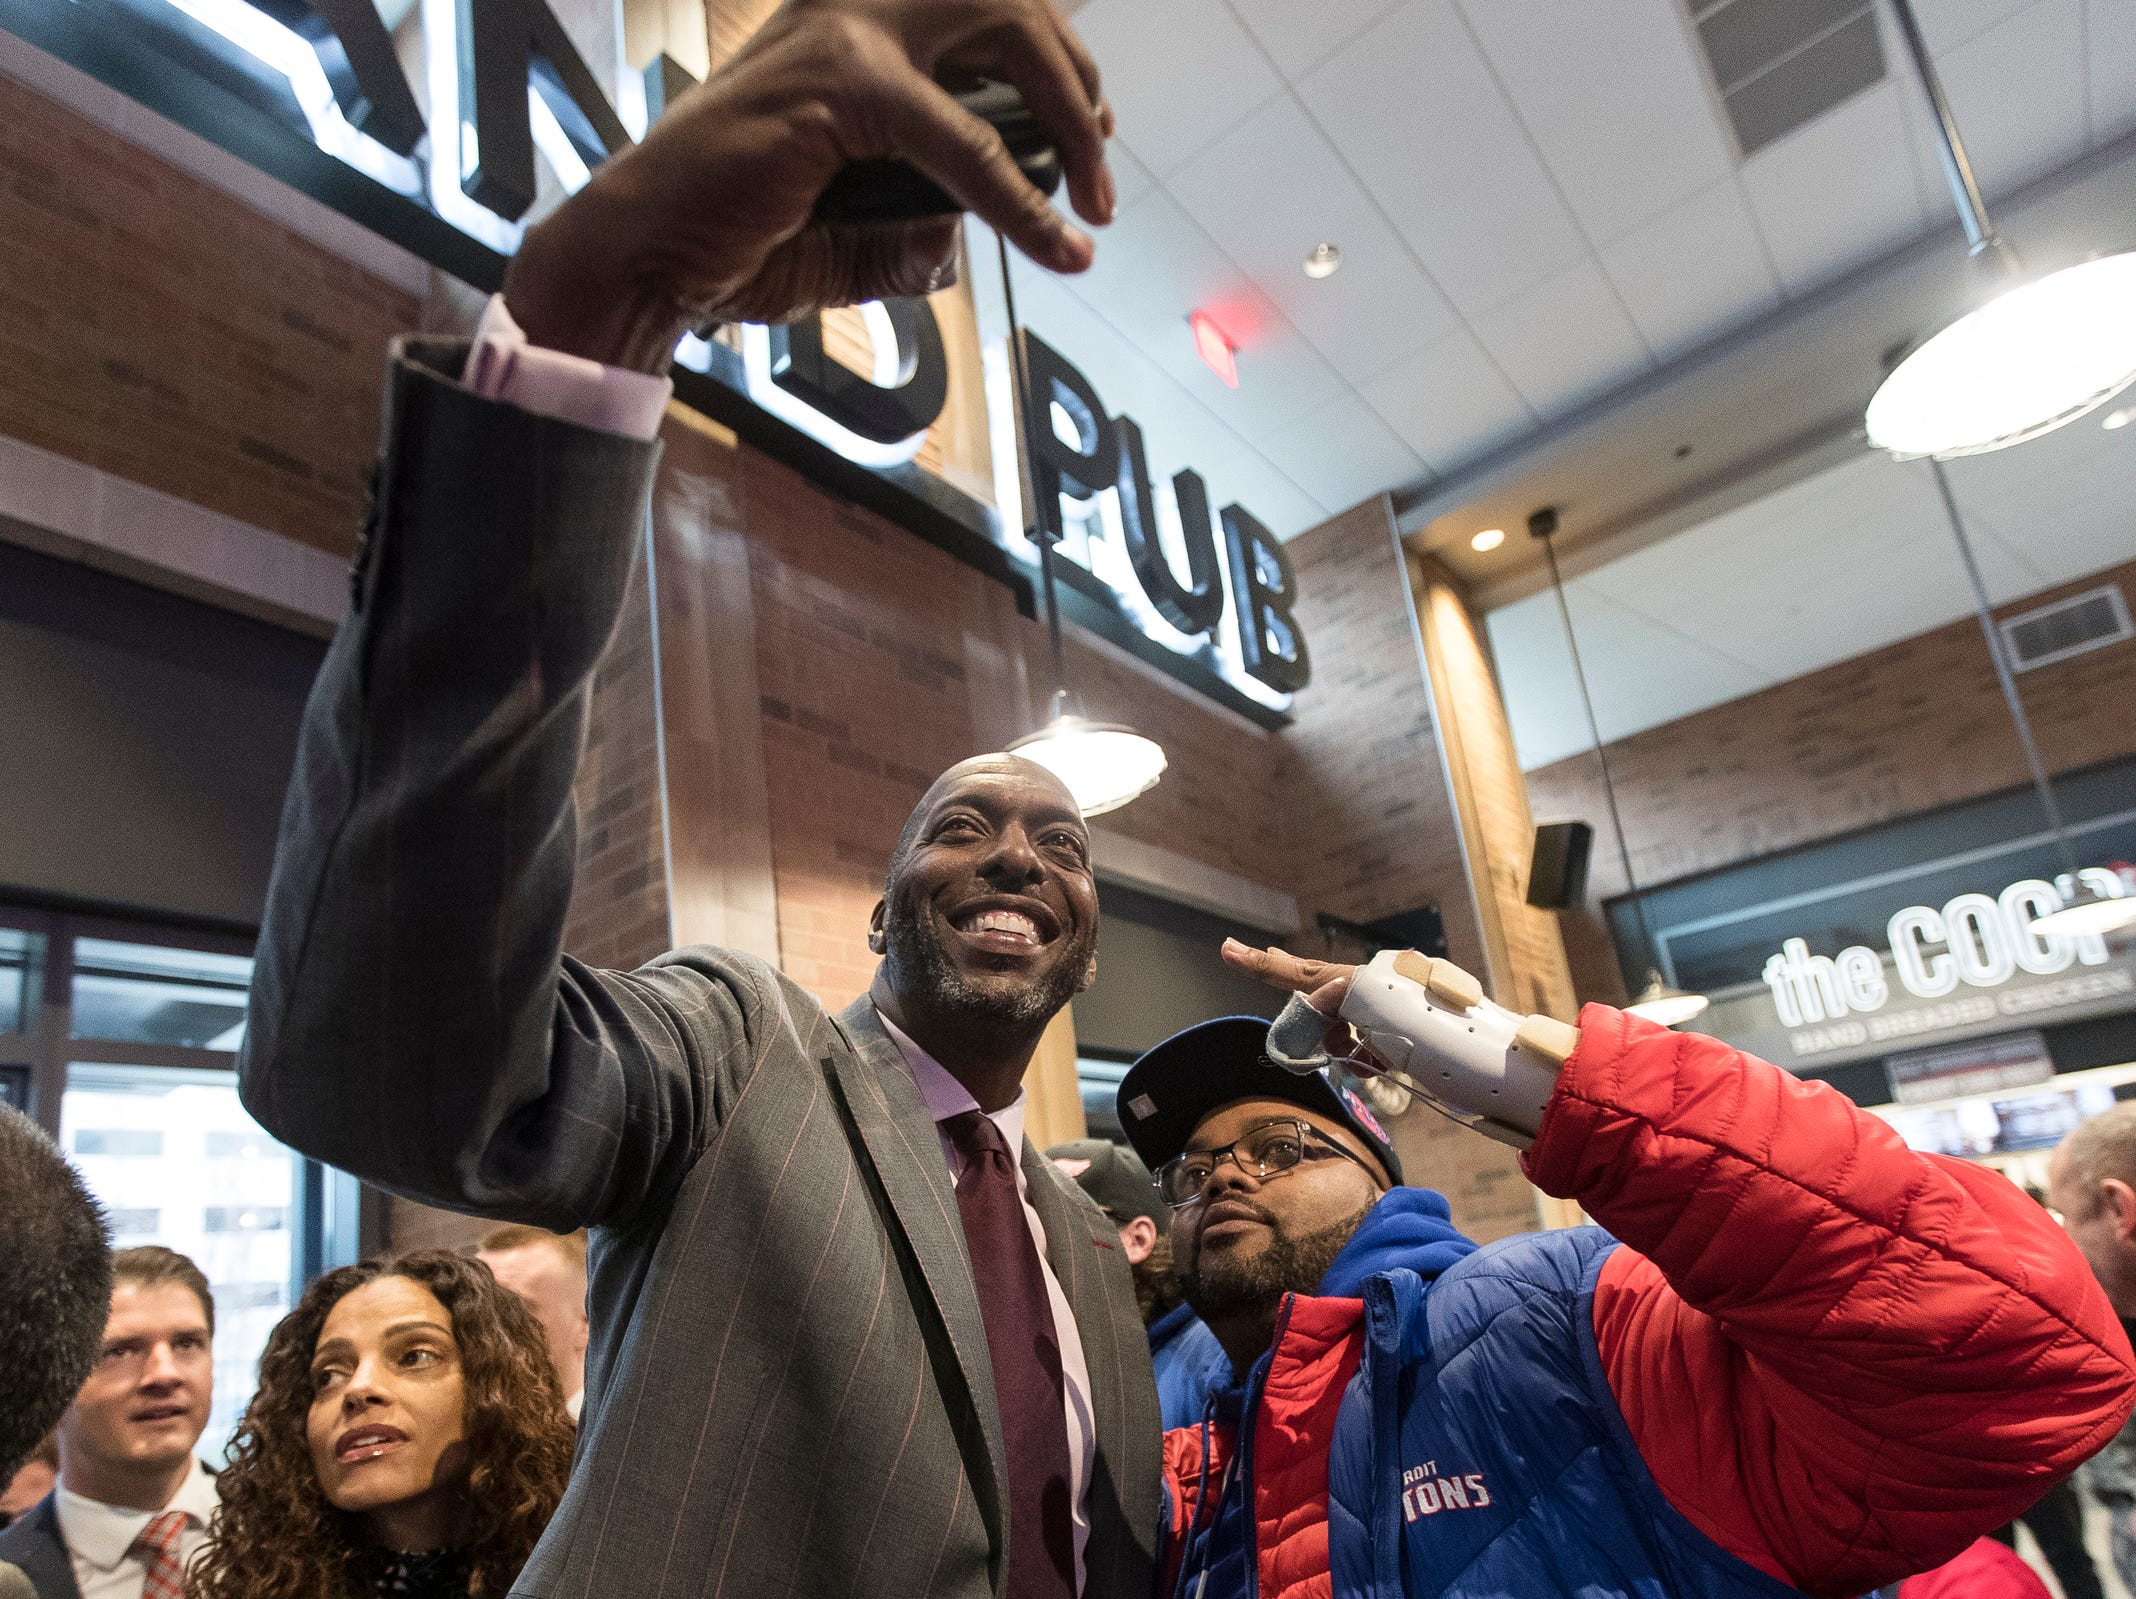 John Salley takes a selfie with a Pistons fan before the Pistons-Trail Blazers game at the Little Caesars Arena in Detroit, Saturday, March 30, 2019.